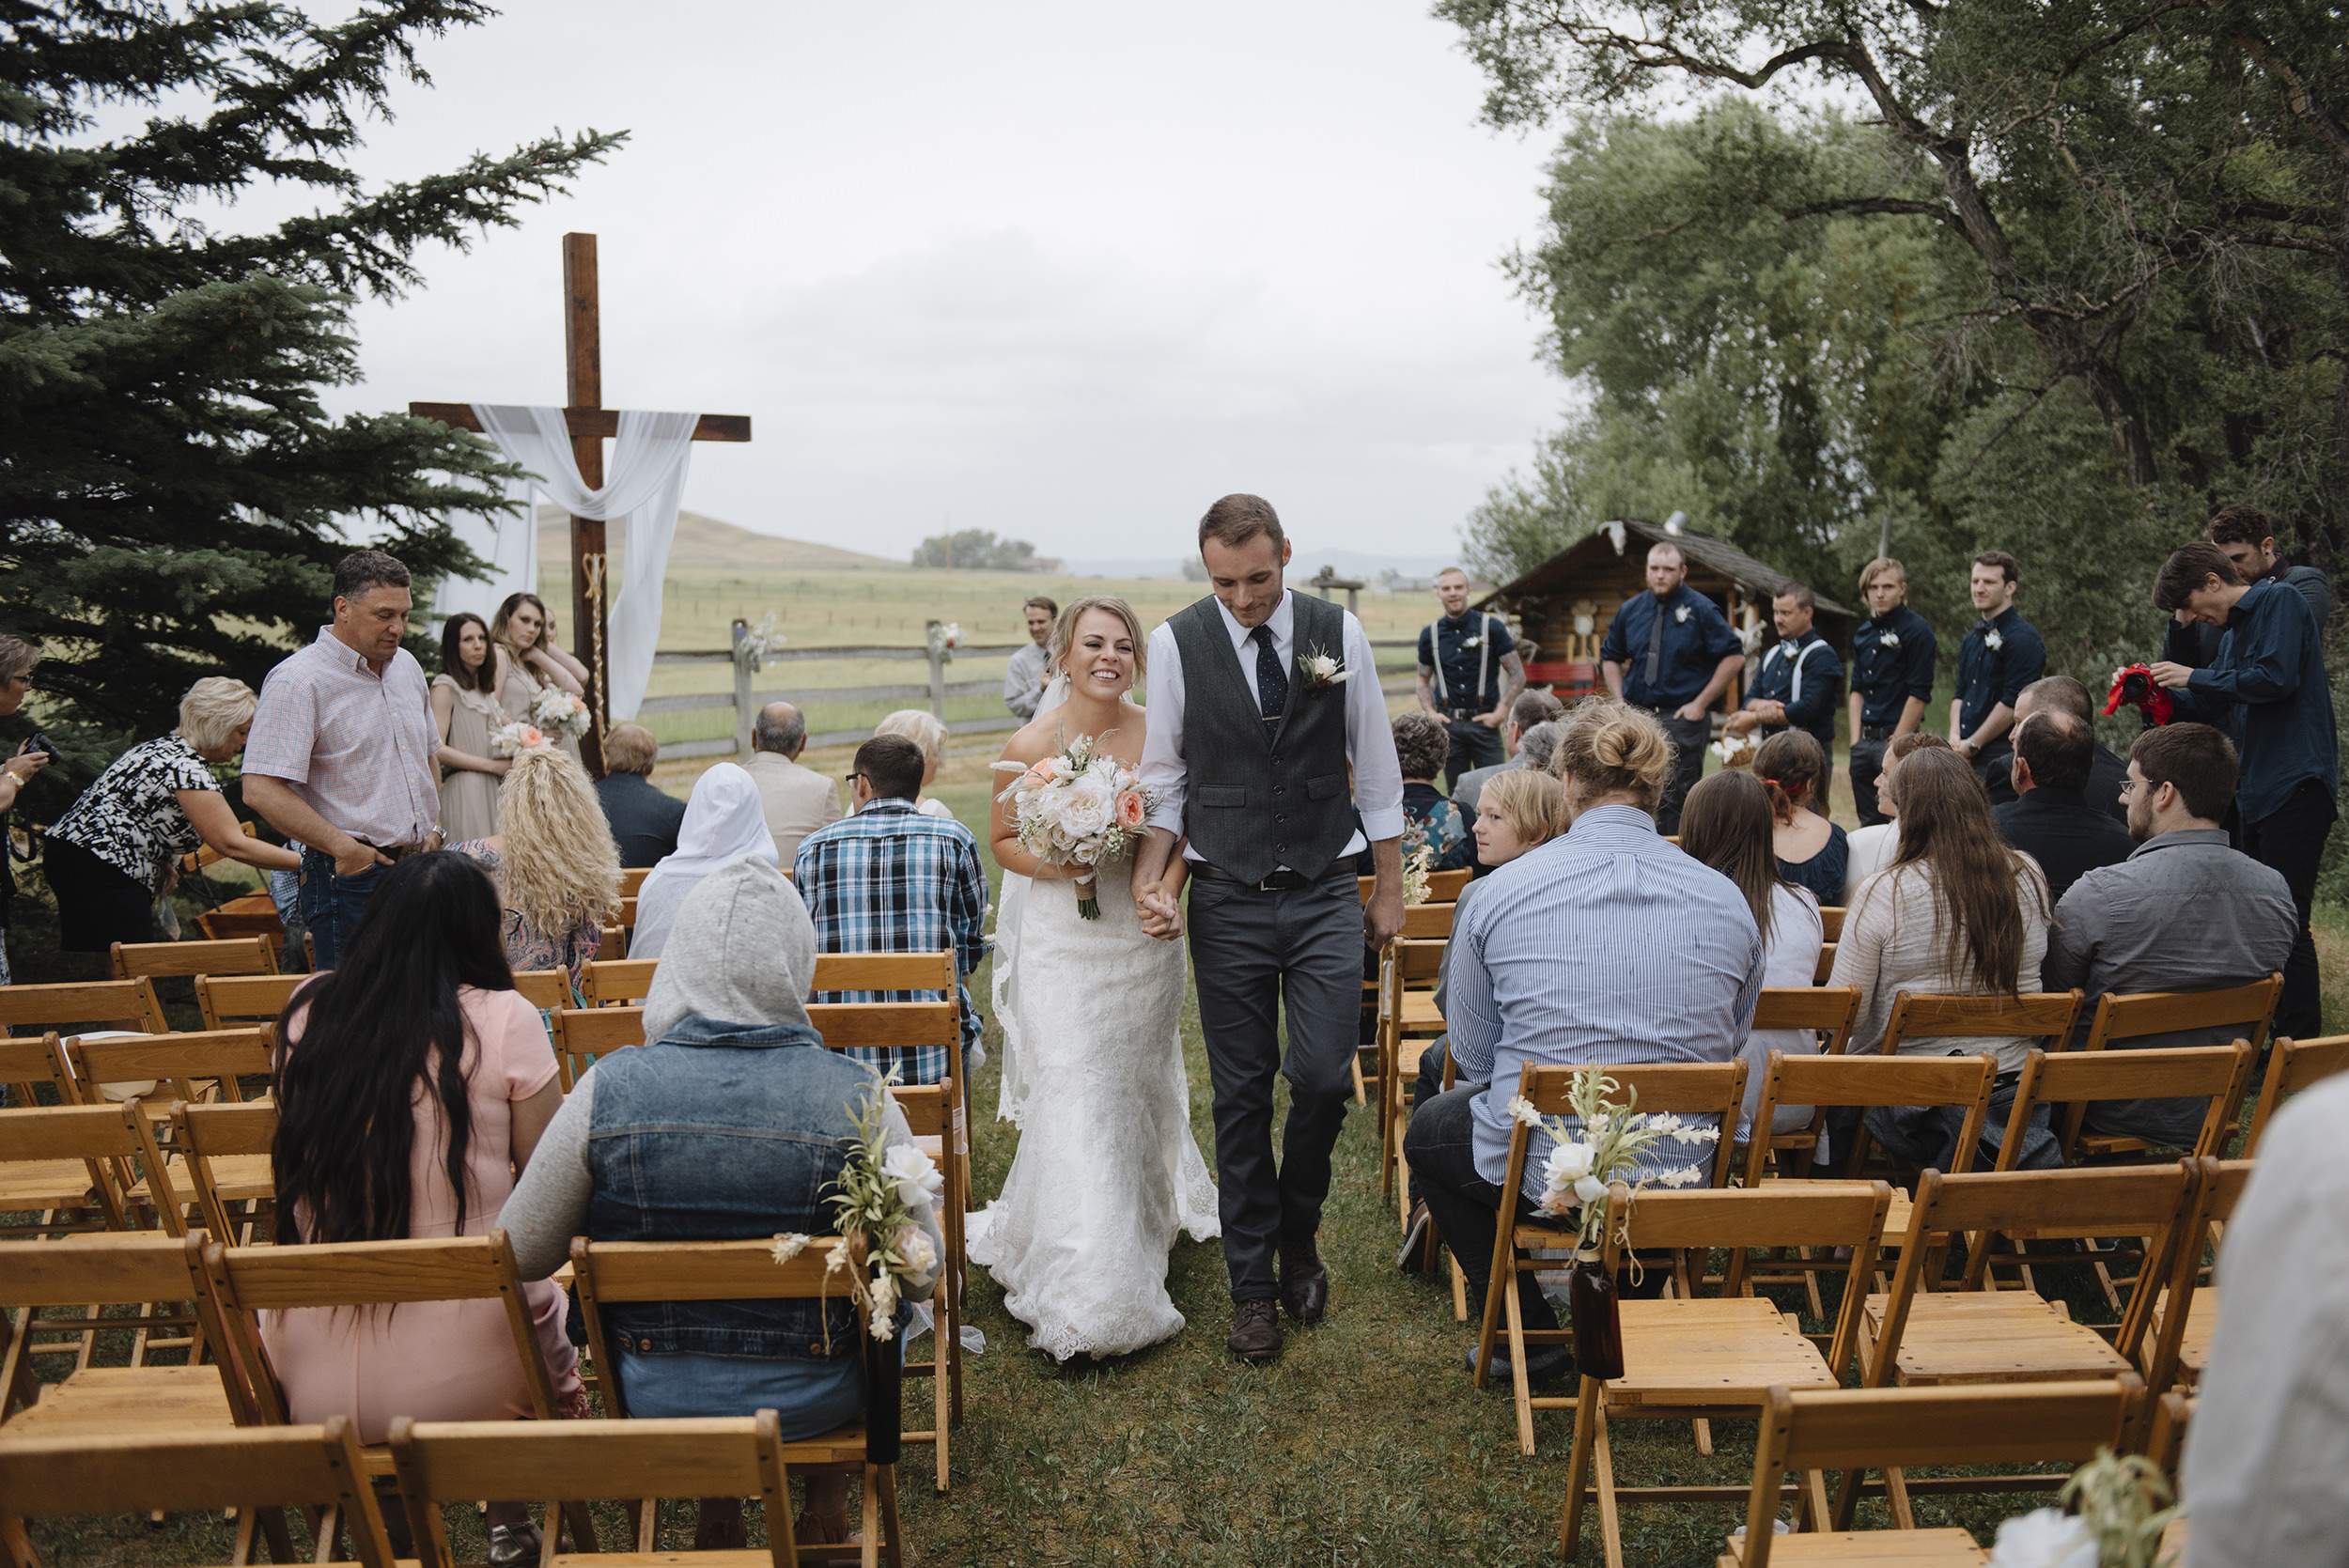 Colby-and-Jess-Intimate-Backyard-Wedding-Bozeman-Montana409.jpg